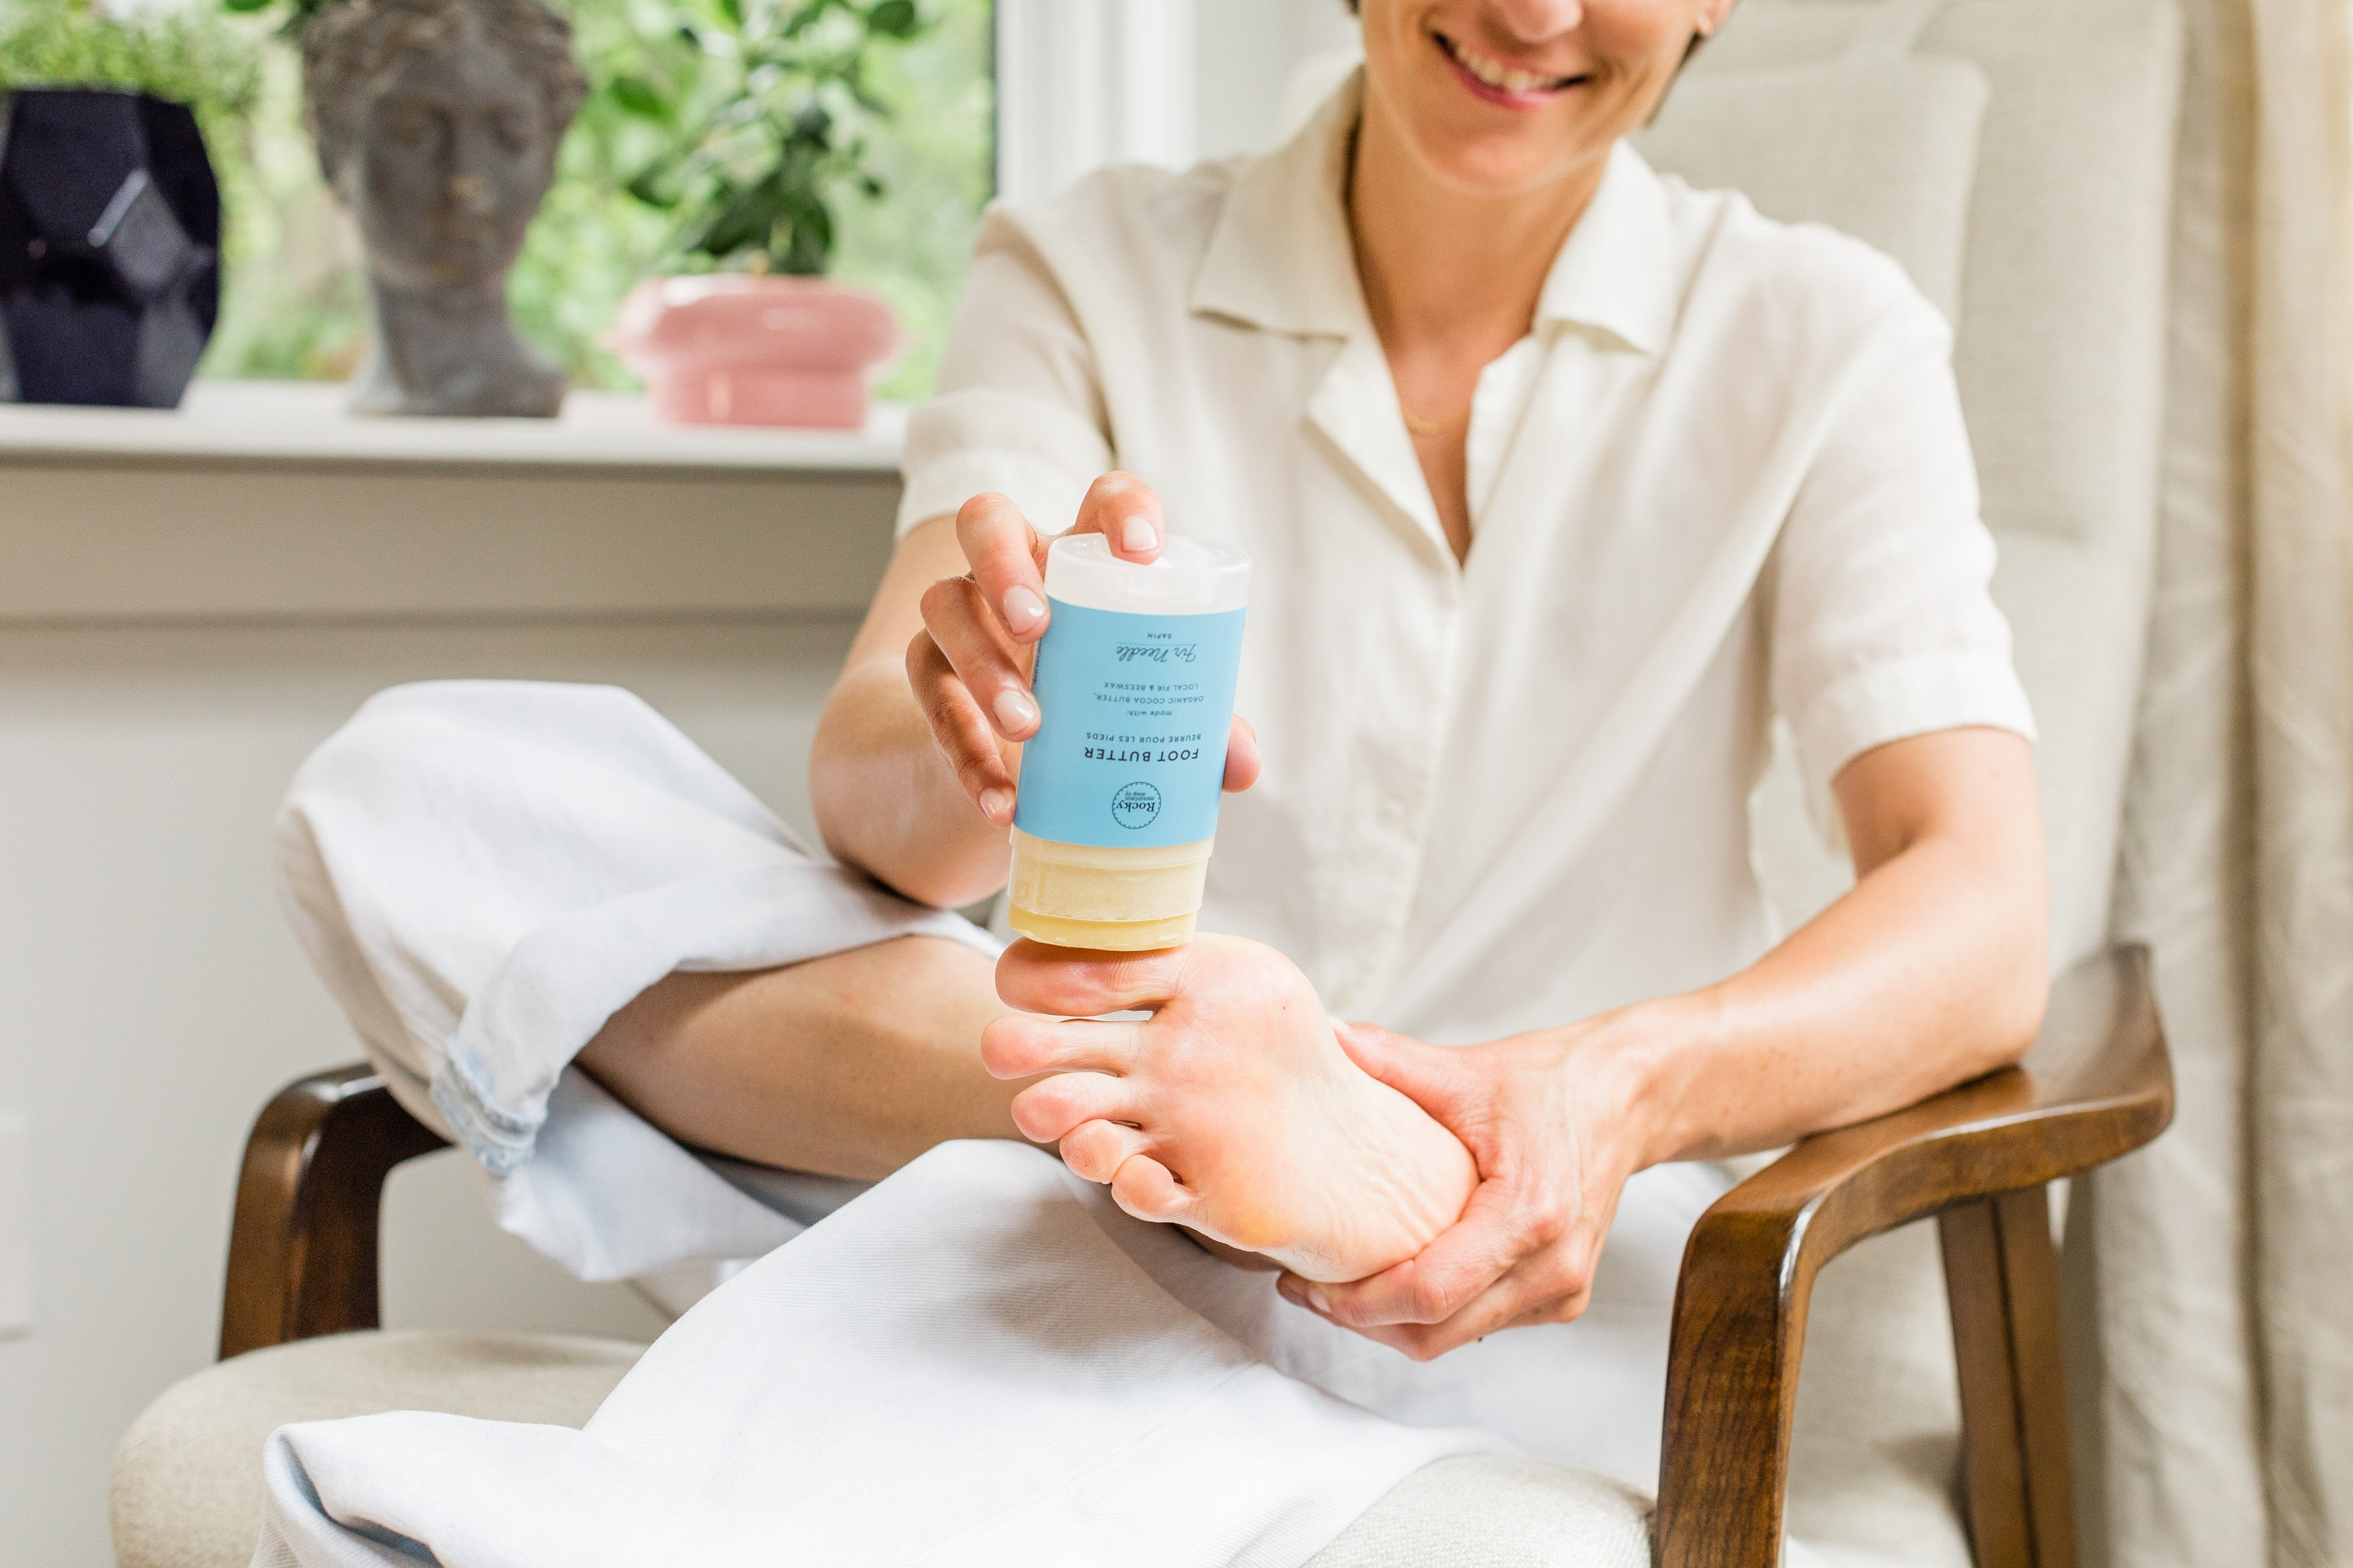 Karina Birch applying Rocky Mountain Soap Company Foot Butter to her foot.